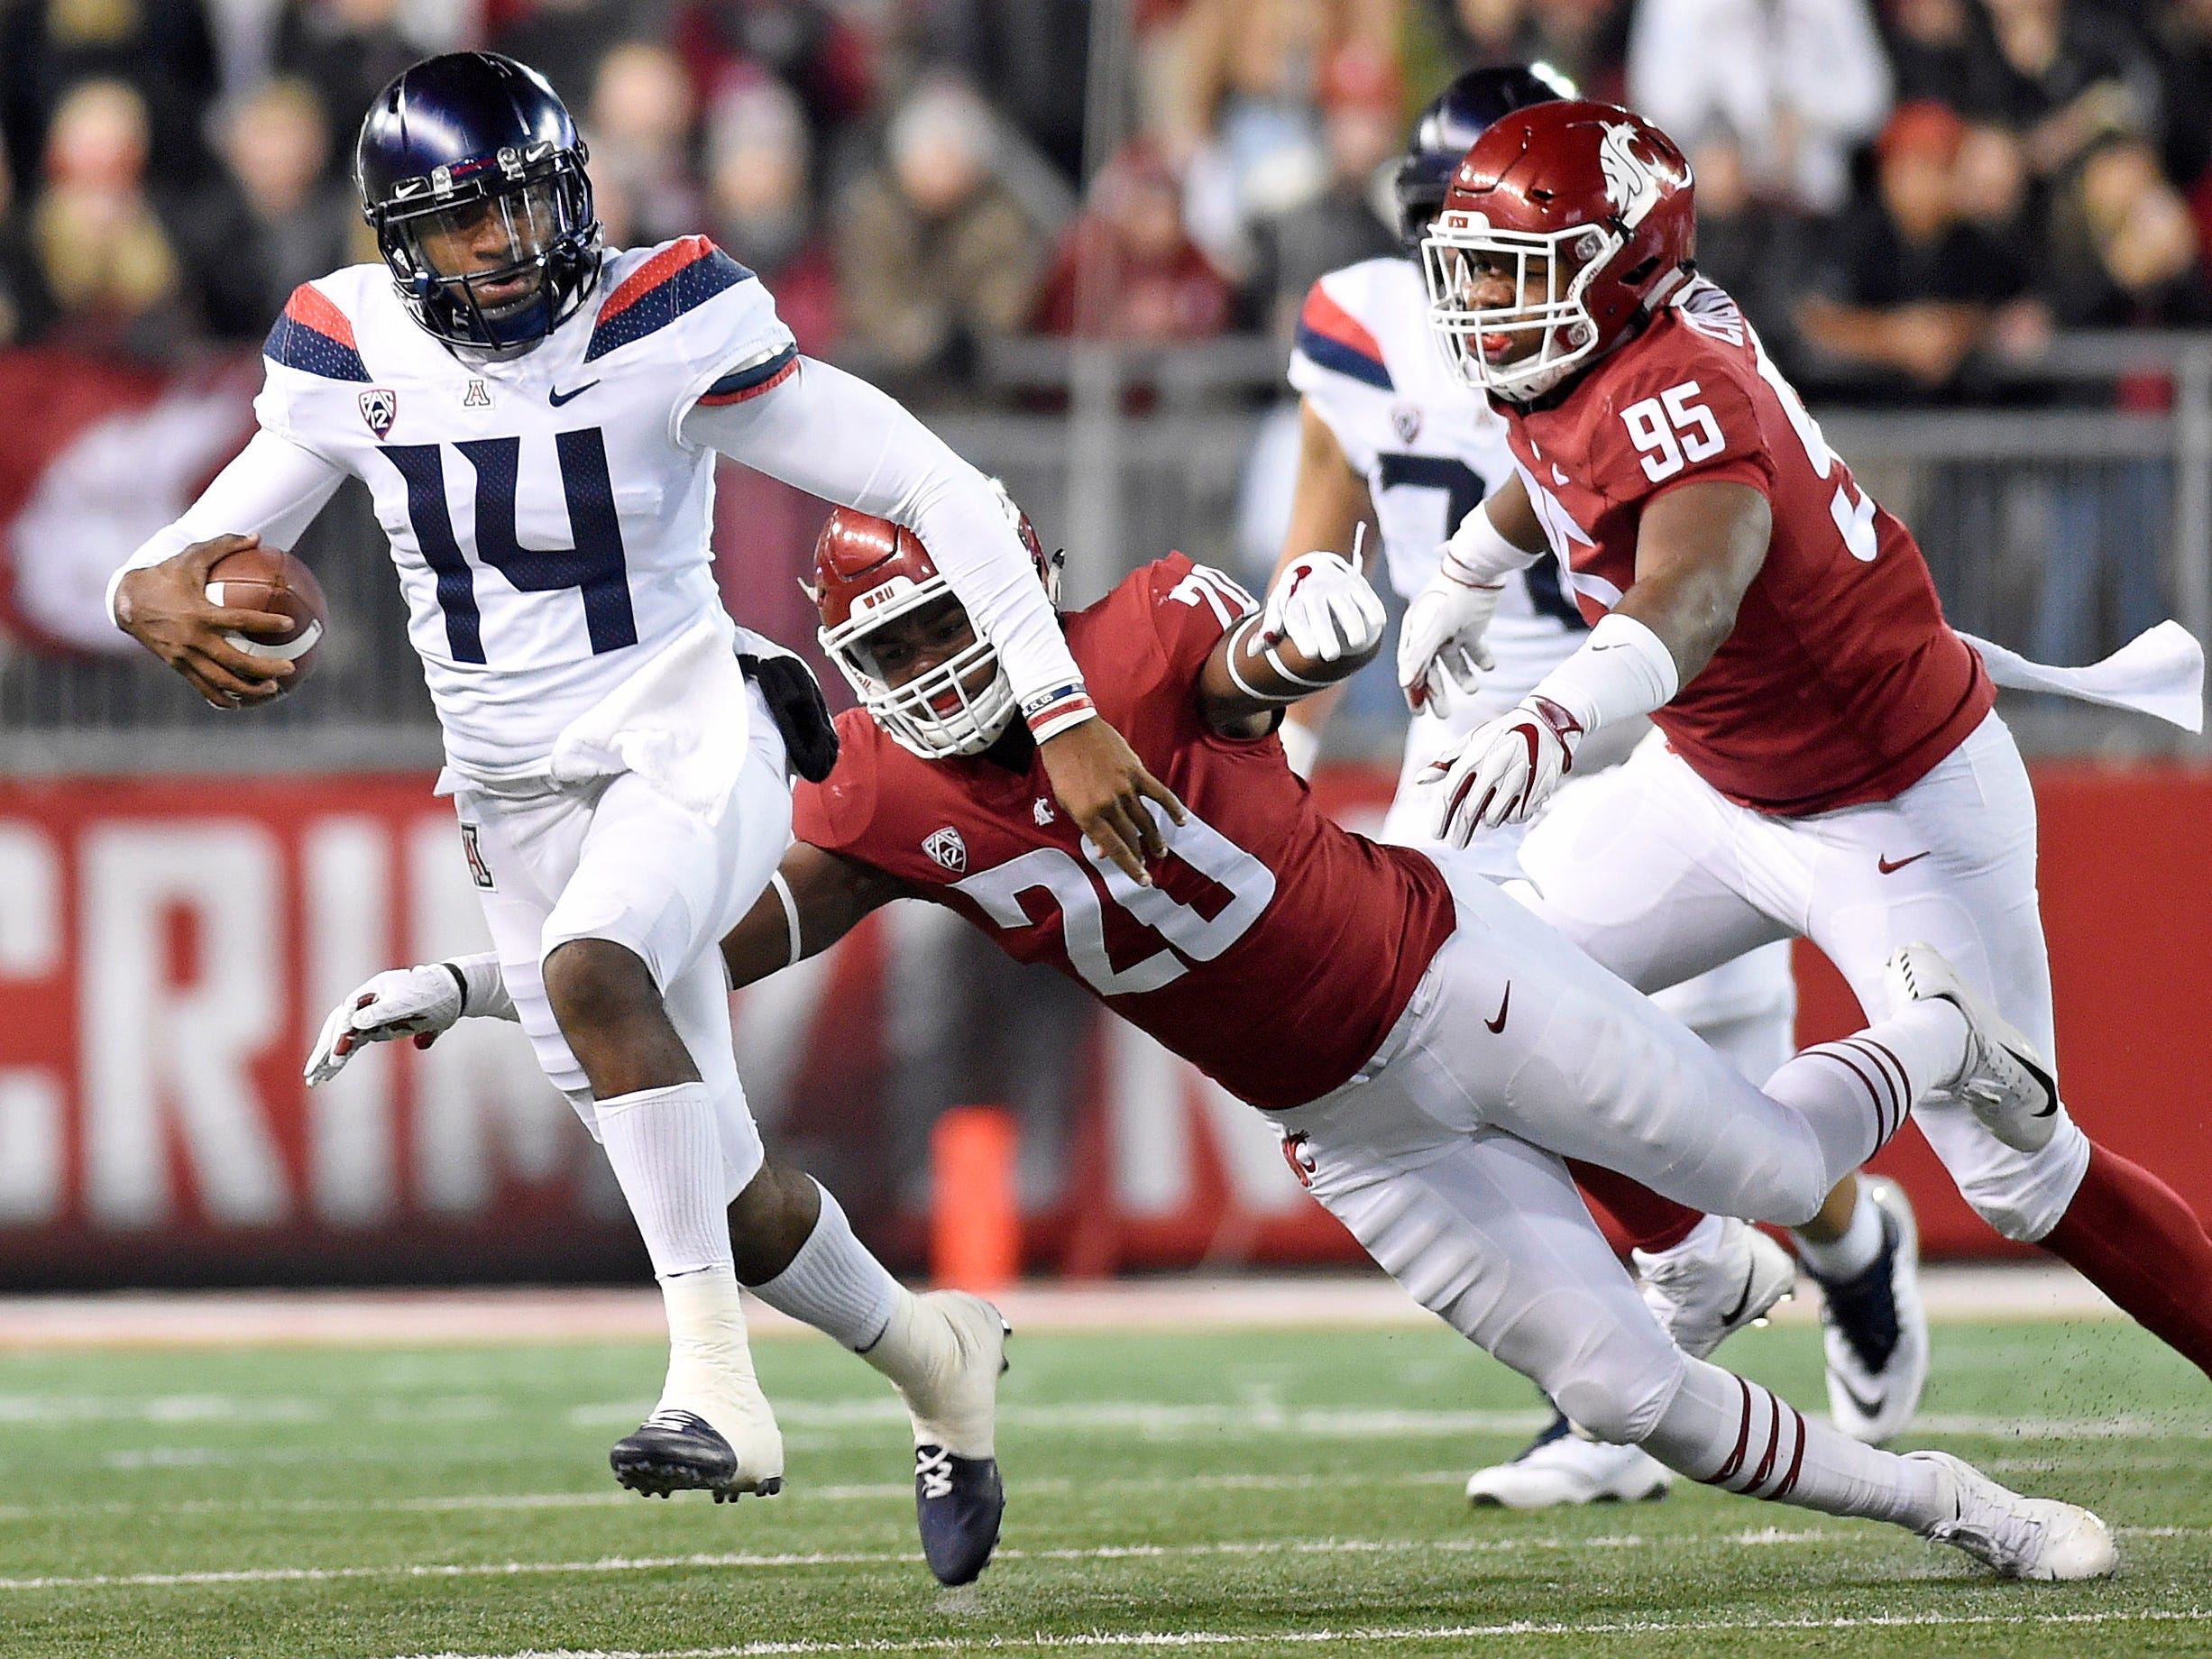 Nov 17, 2018; Pullman, WA, USA; Arizona Wildcats quarterback Khalil Tate (14) gets away from Washington State Cougars linebacker Dominick Silvels (20) in the first half at Martin Stadium. Mandatory Credit: James Snook-USA TODAY Sports